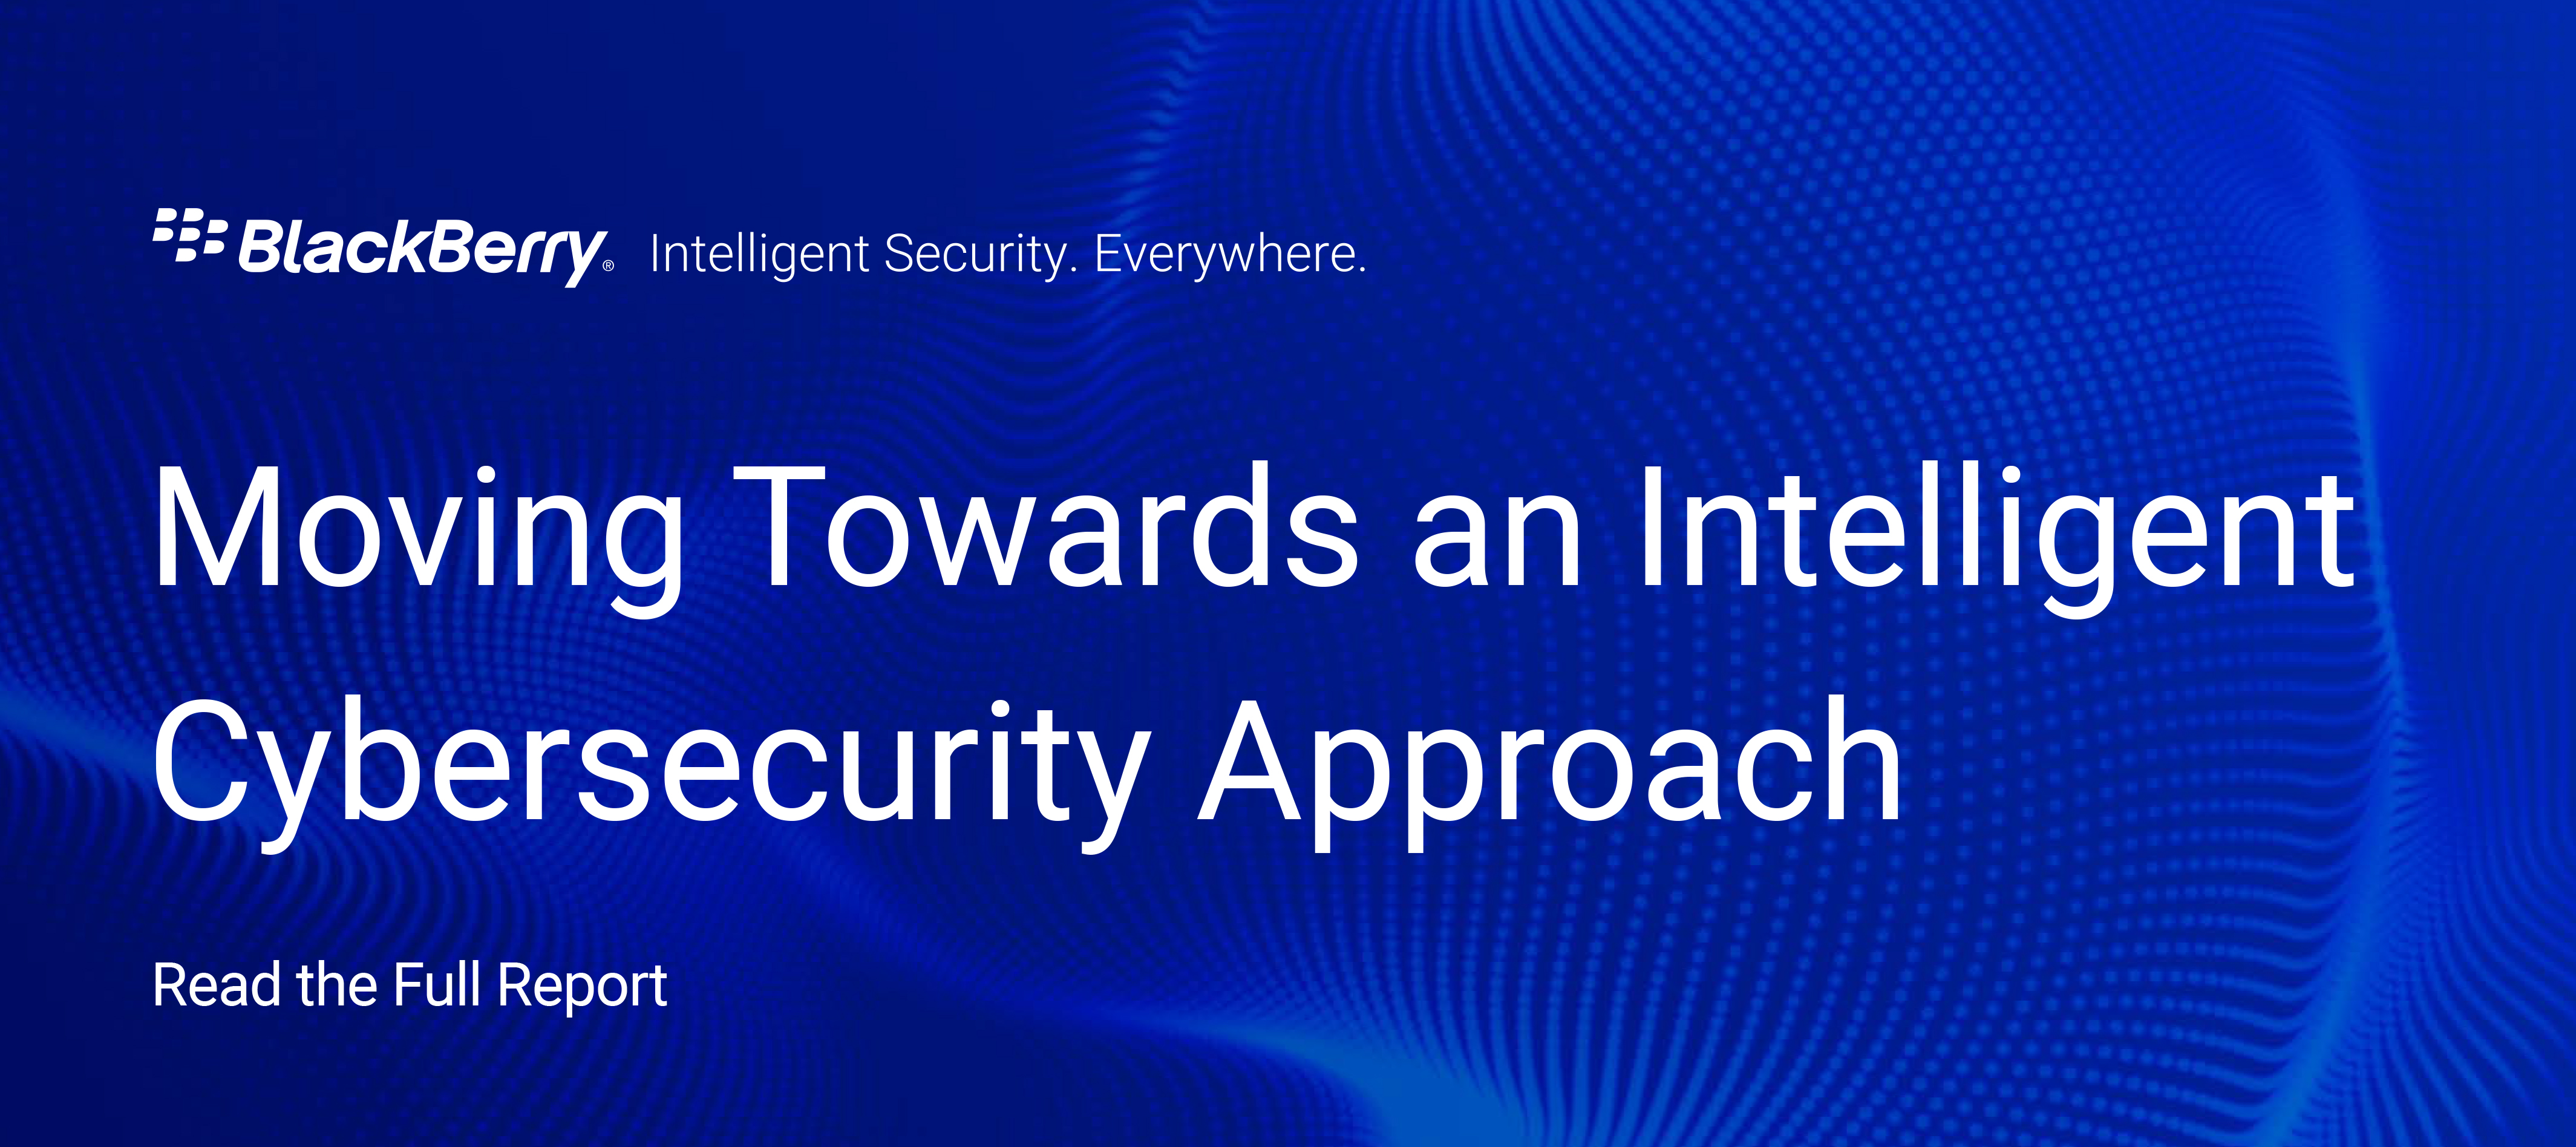 Moving towards an intelligent cybersecurity approach